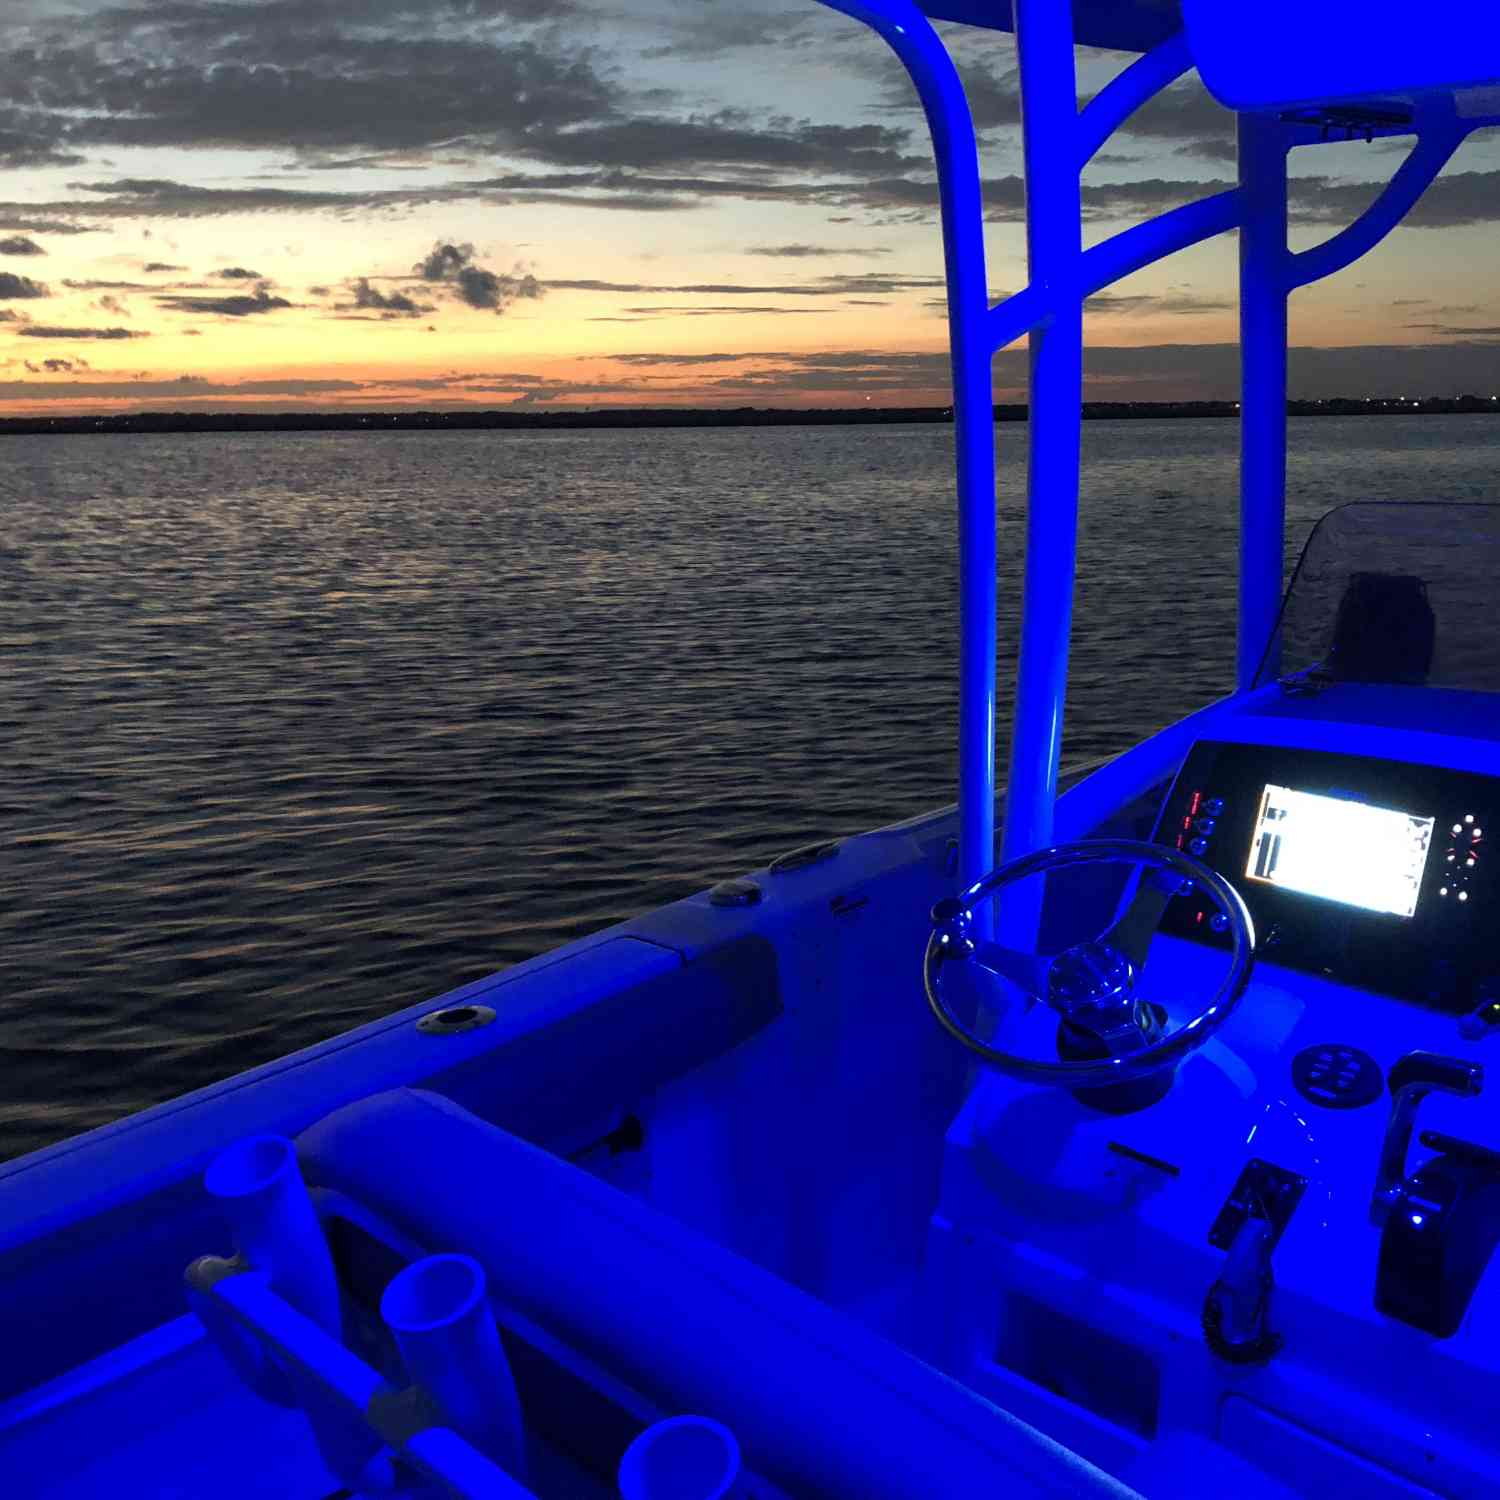 Title: Sunset Cruise on the 232 Open - On board their Sportsman Open 232 Center Console - Location: Stone Harbor, NJ. Participating in the Photo Contest #SportsmanSeptember2018